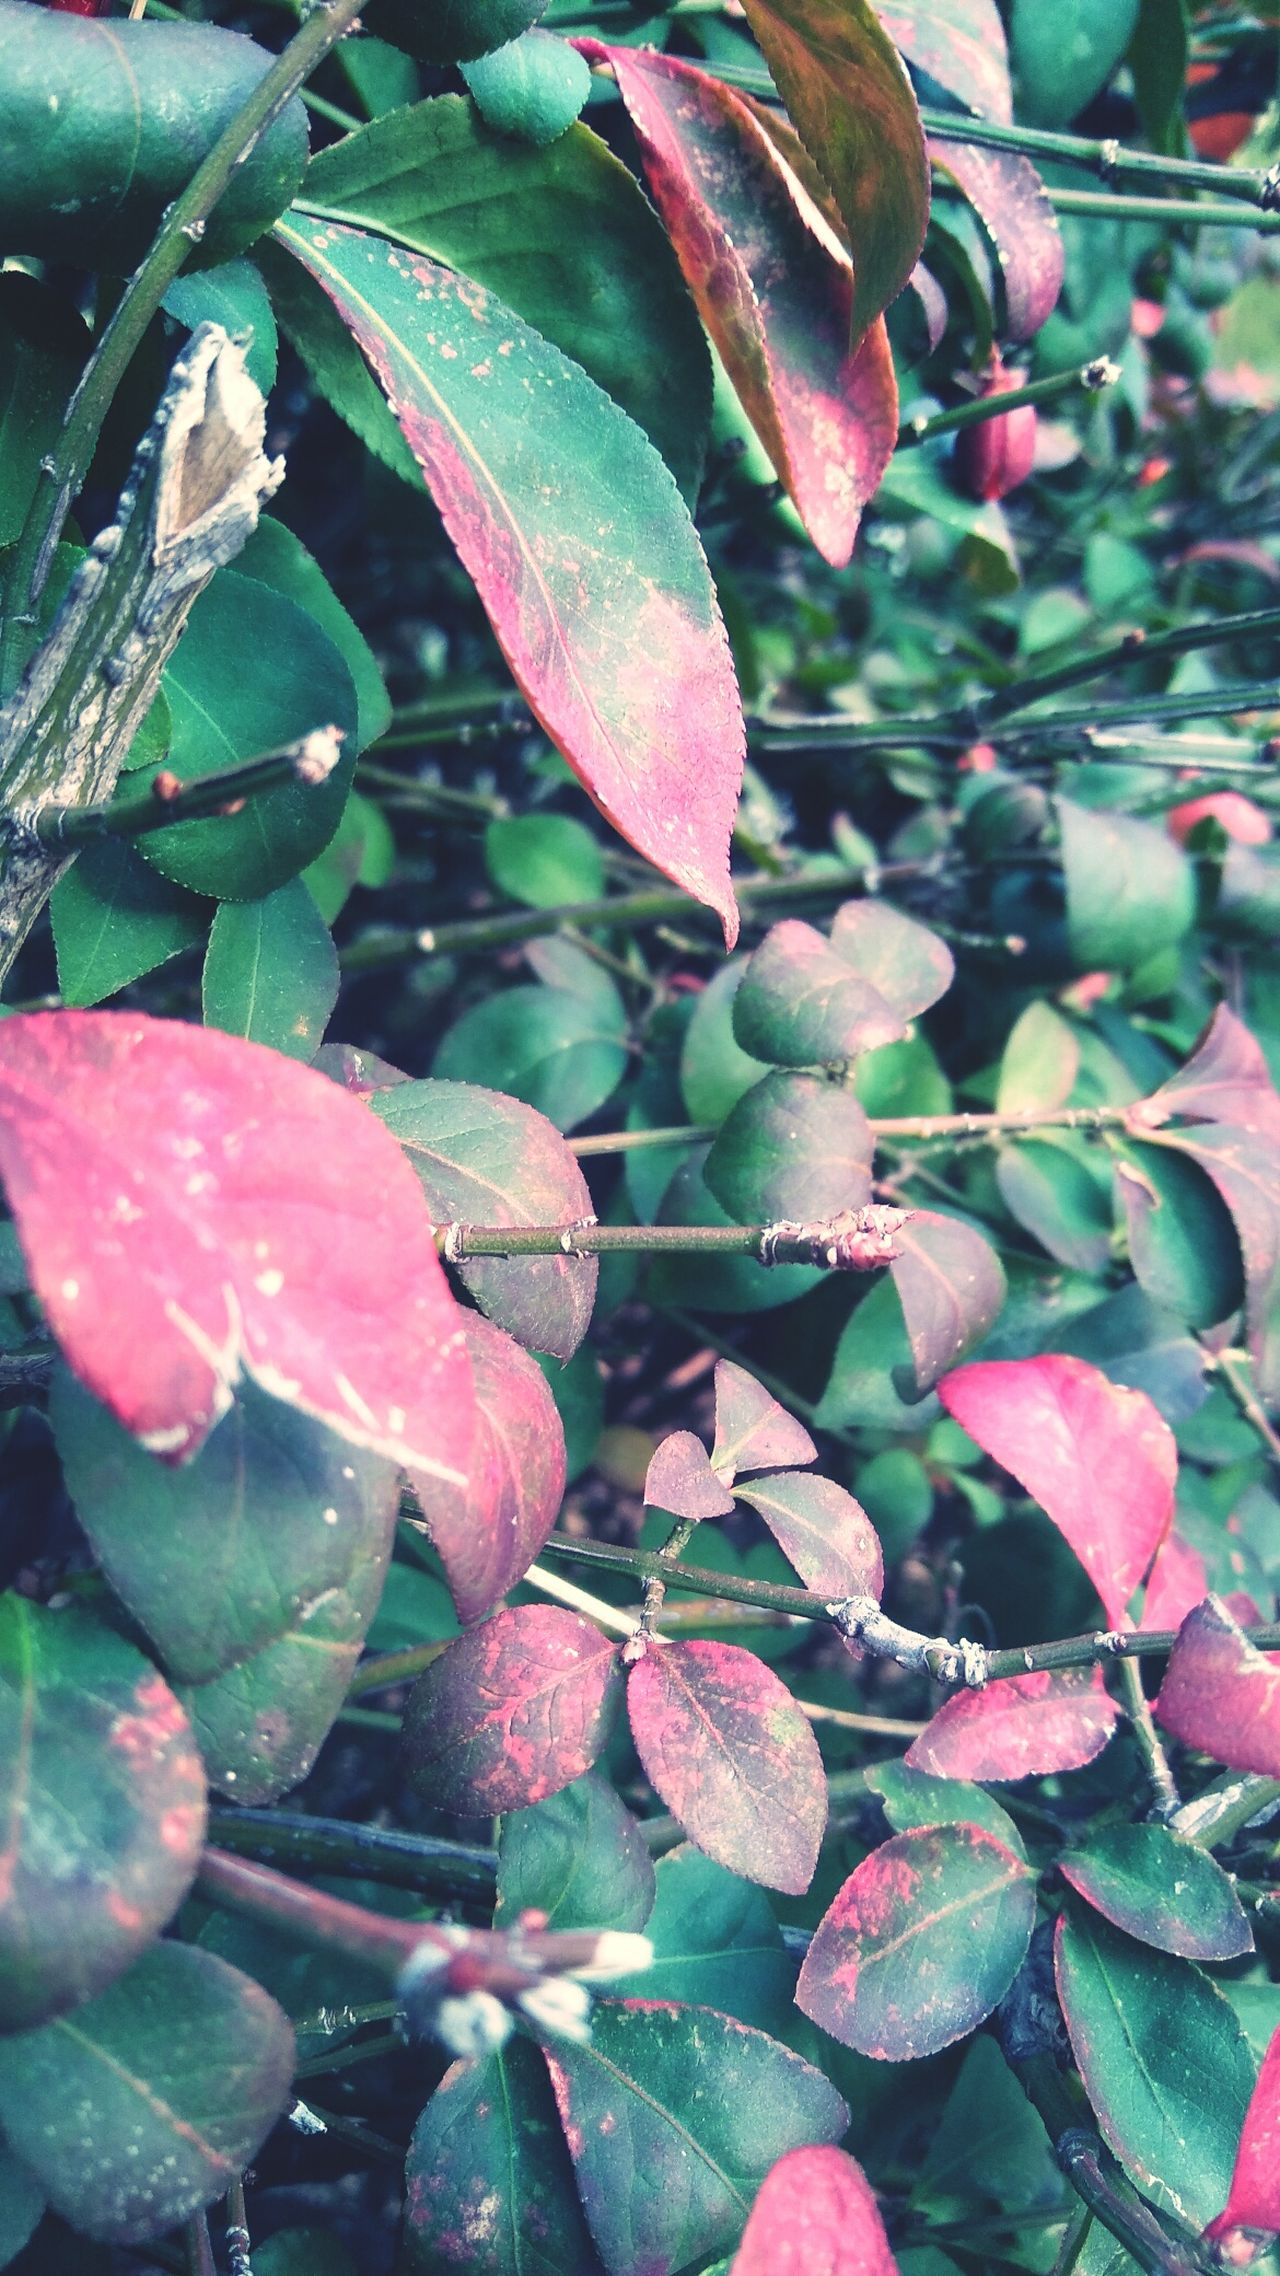 Pink and green leaves Nature Growth Plant Beauty In Nature Leaf Freshness Close-up No People Outdoors Detail Seasonal Autumn Cold Winter Close Up Close-up Shot Close‐up Photography Autumn Leaves Season  Multi Colored Scenics Branch Pink Leaves Green Leaves Pink And Green